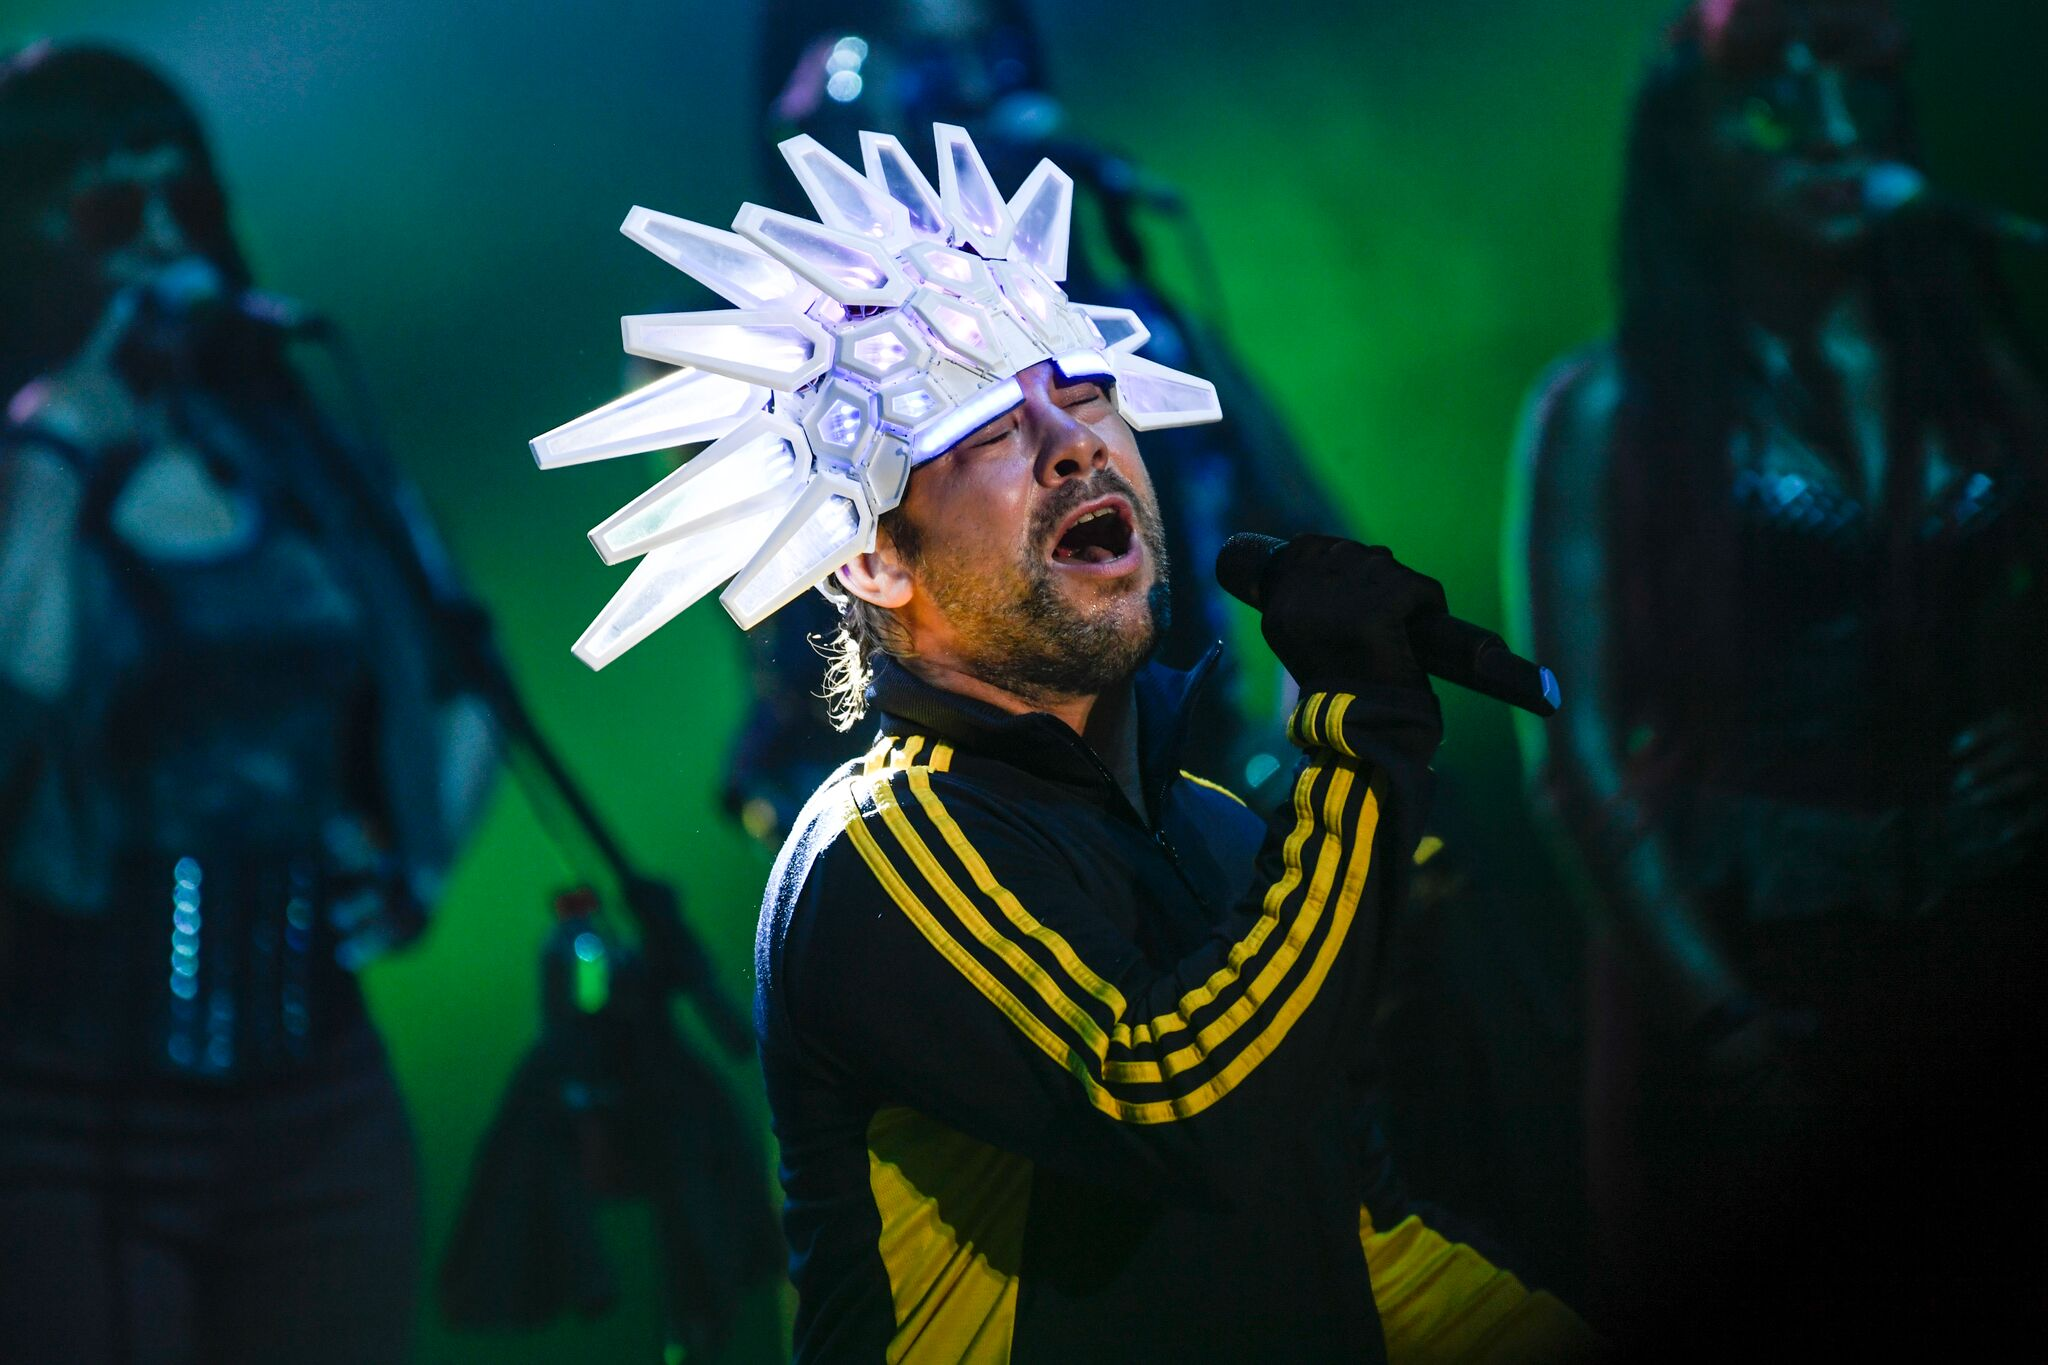 Jamiroquai steals the show at Starlite Festival